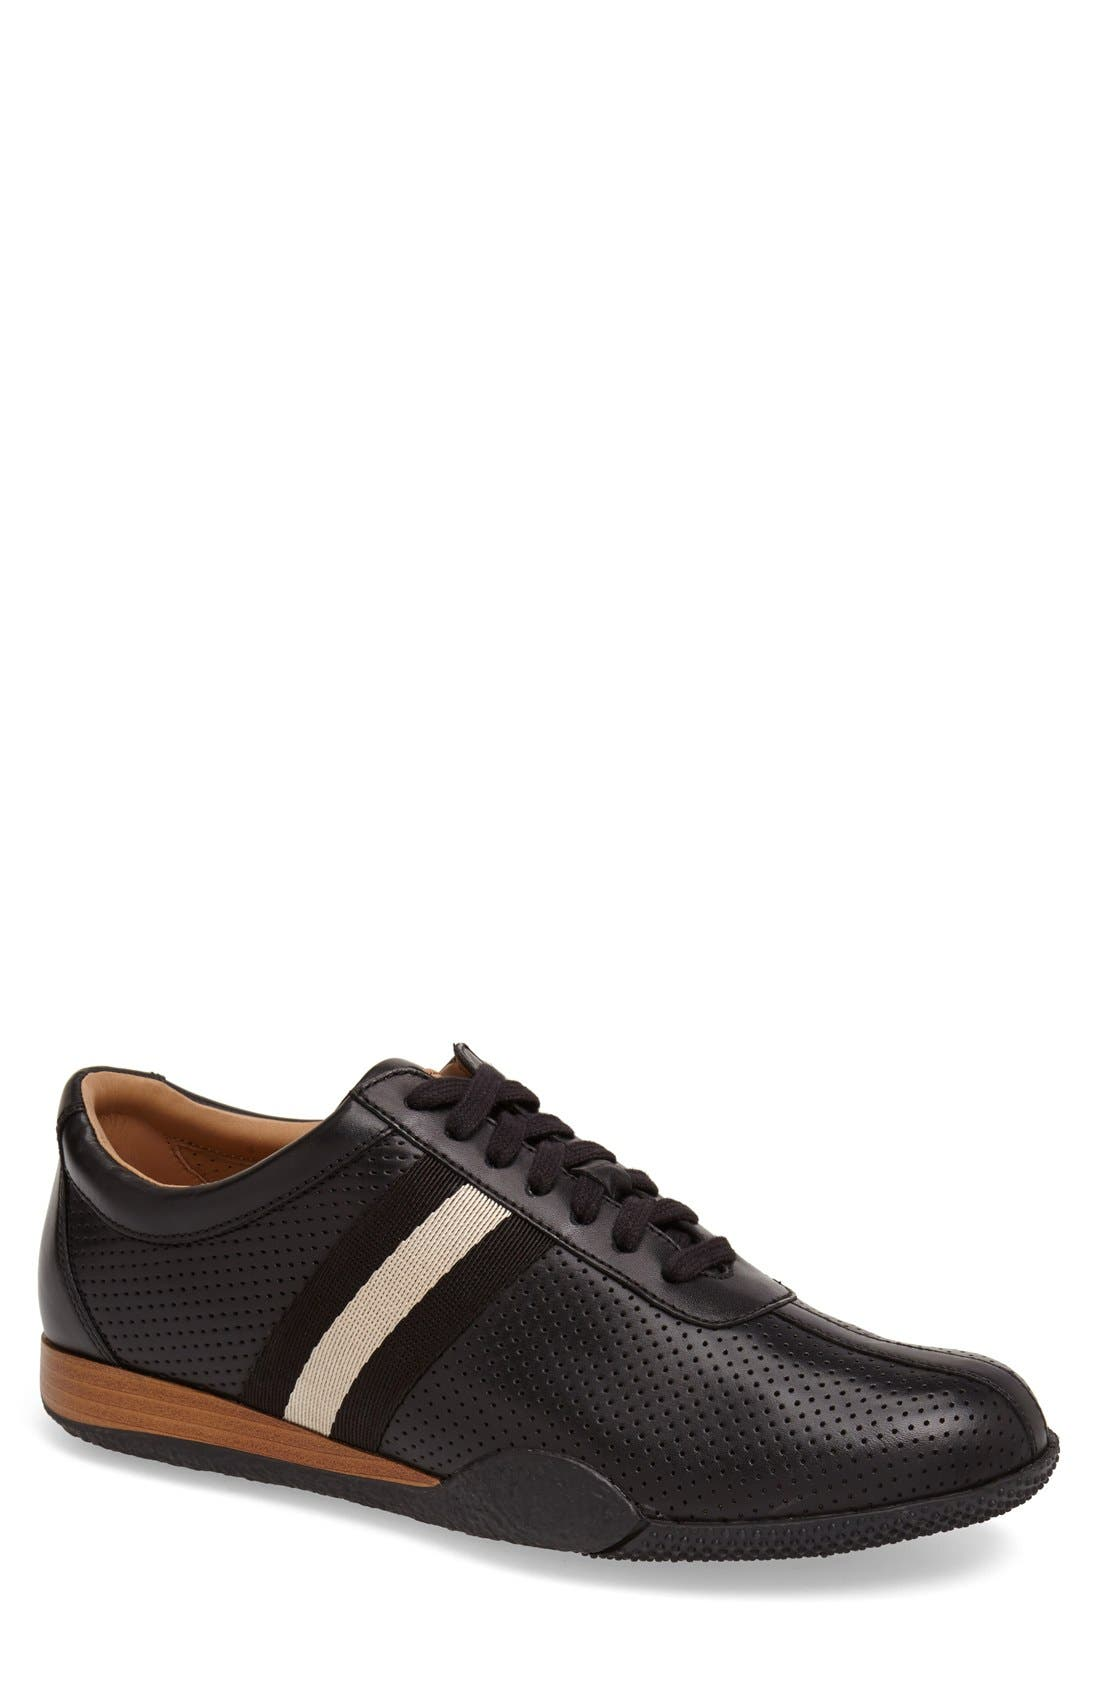 'Frenz' Perforated Sneaker,                         Main,                         color, 001